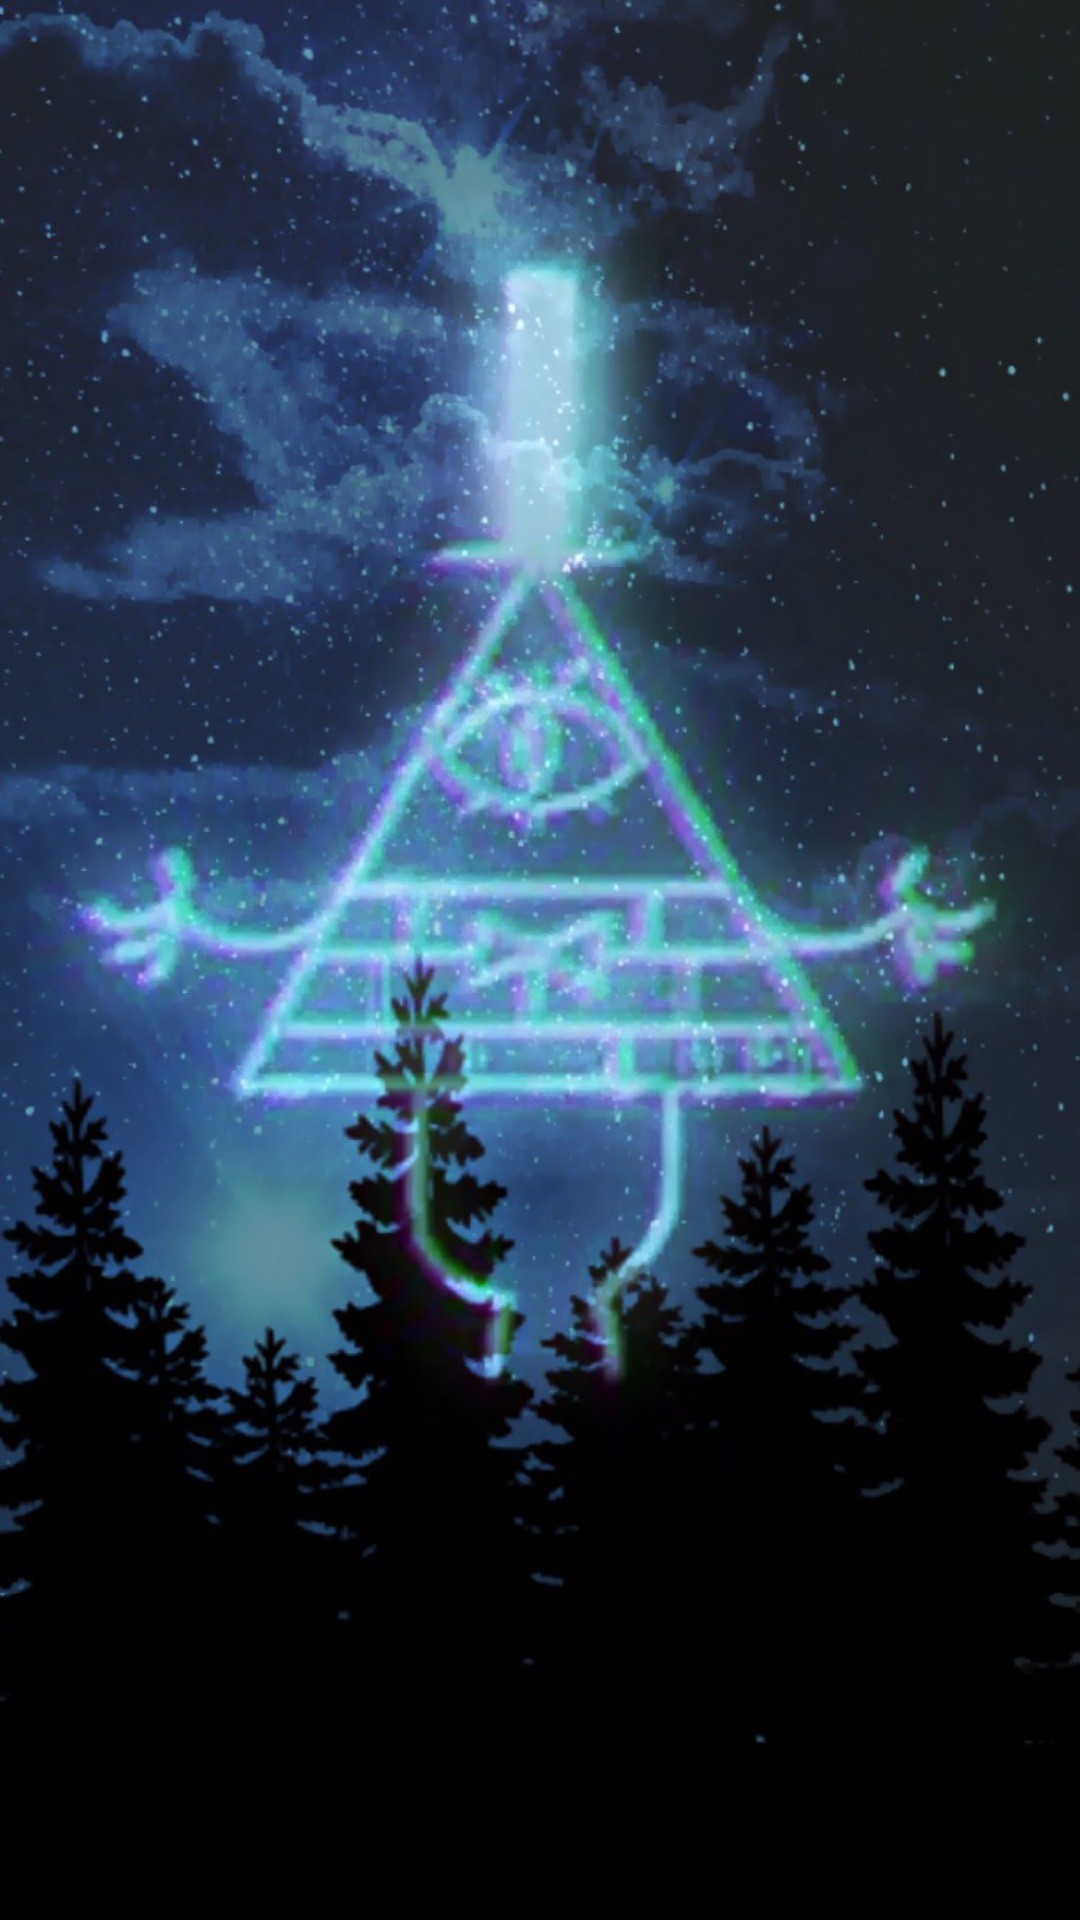 Gravity Falls Bill Cipher Wallpaper 80 images 1080x1920